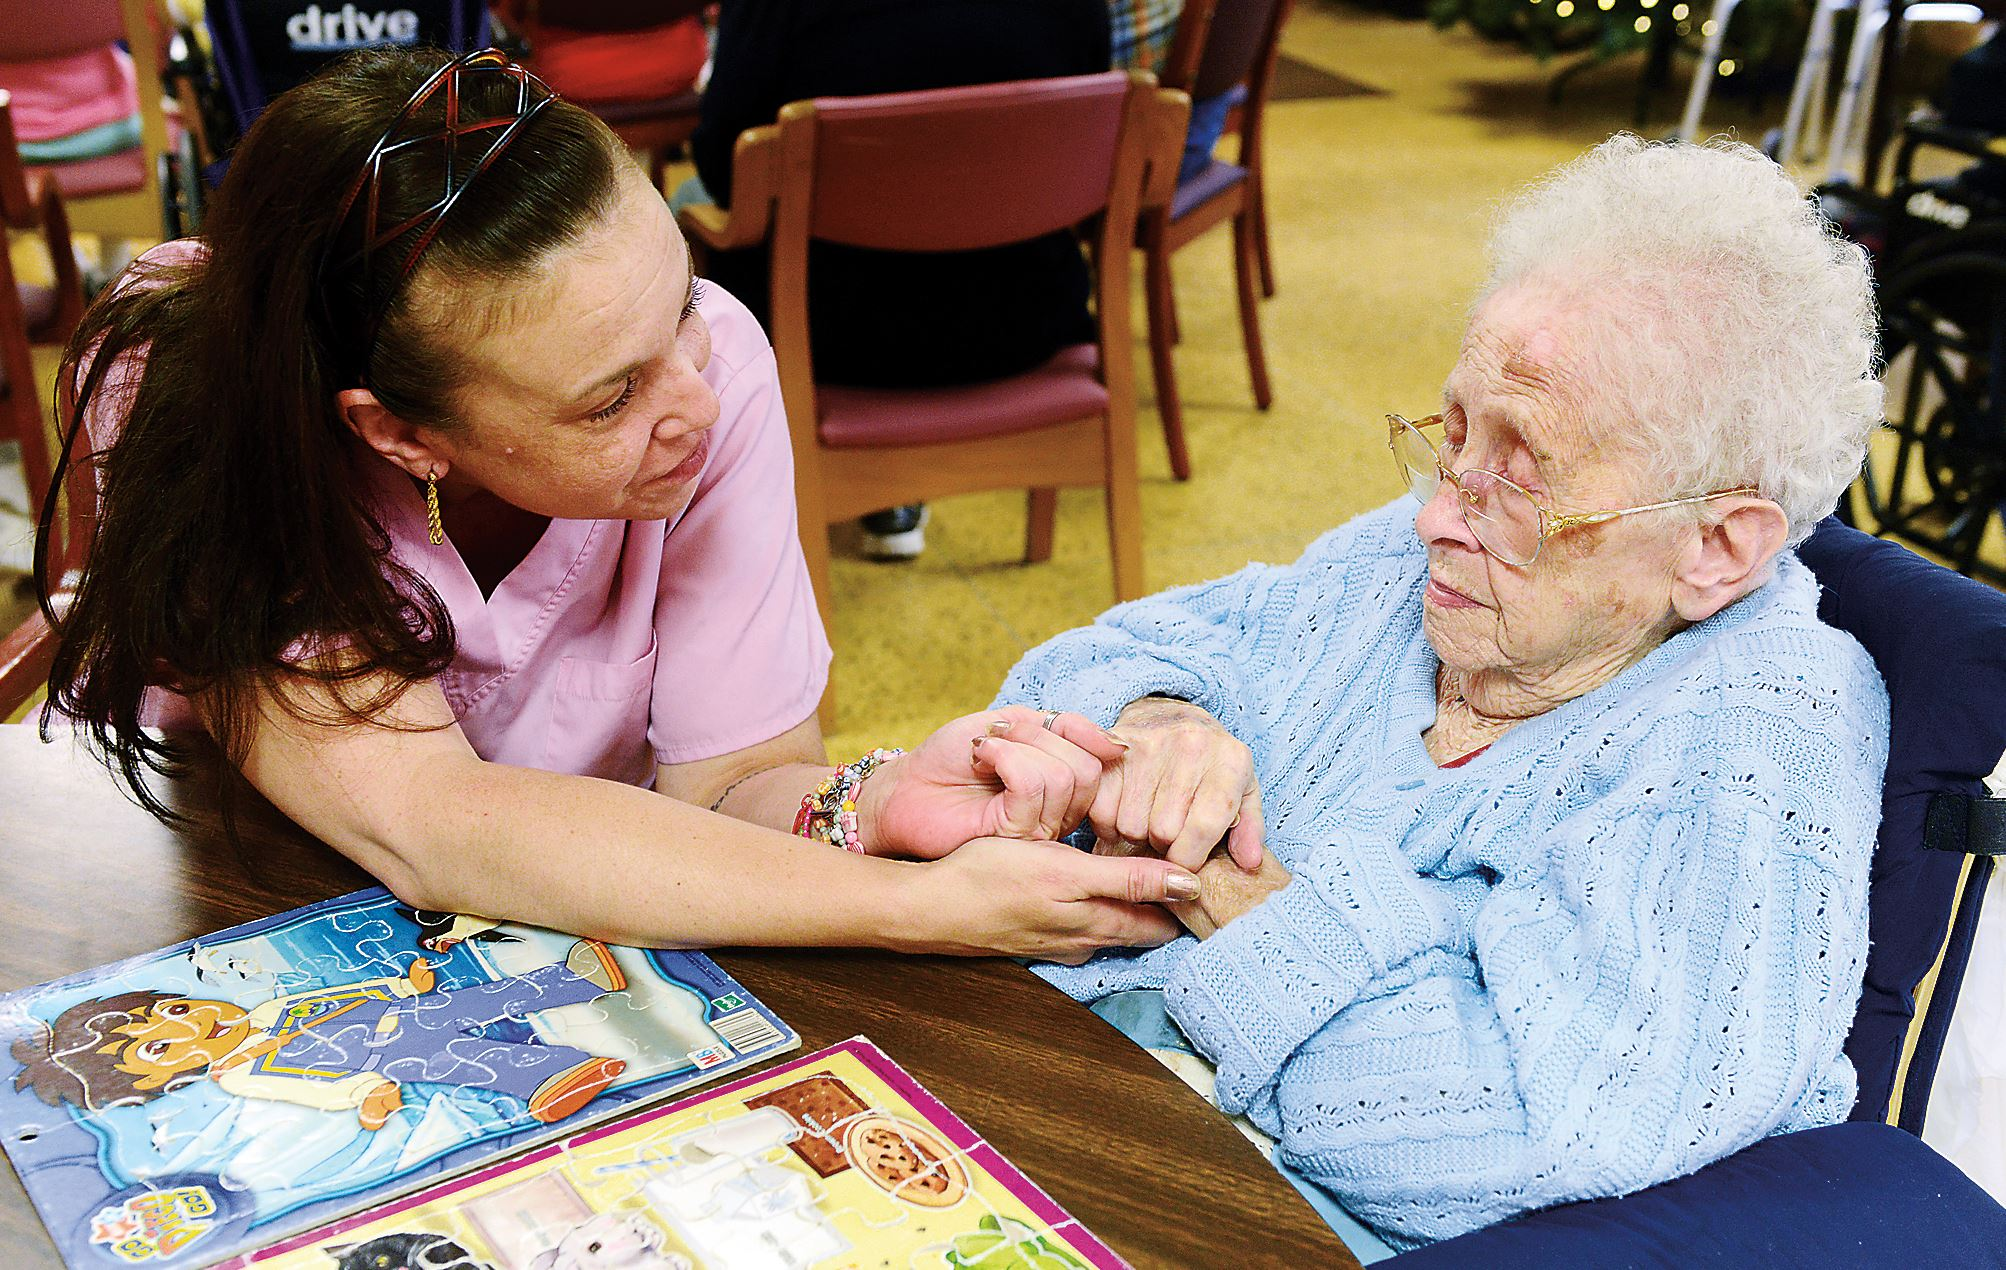 adult day care programs